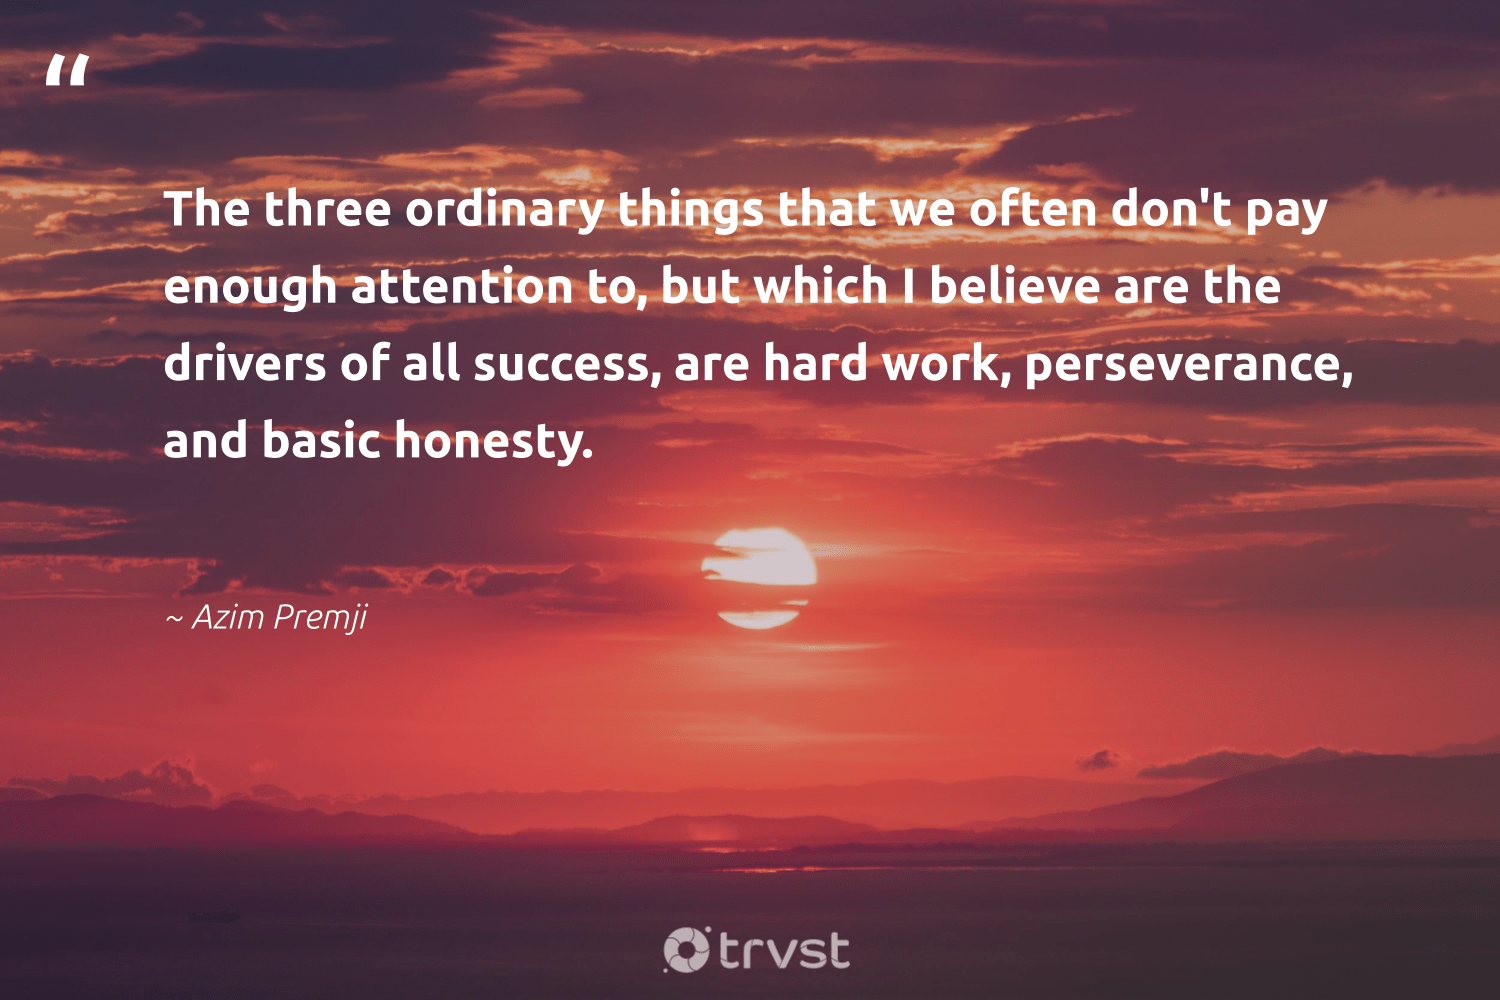 """""""The three ordinary things that we often don't pay enough attention to, but which I believe are the drivers of all success, are hard work, perseverance, and basic honesty.""""  - Azim Premji #trvst #quotes #productivity #success #nevergiveup #futureofwork #takeaction #productive #begreat #softskills #socialchange #timemanagement"""